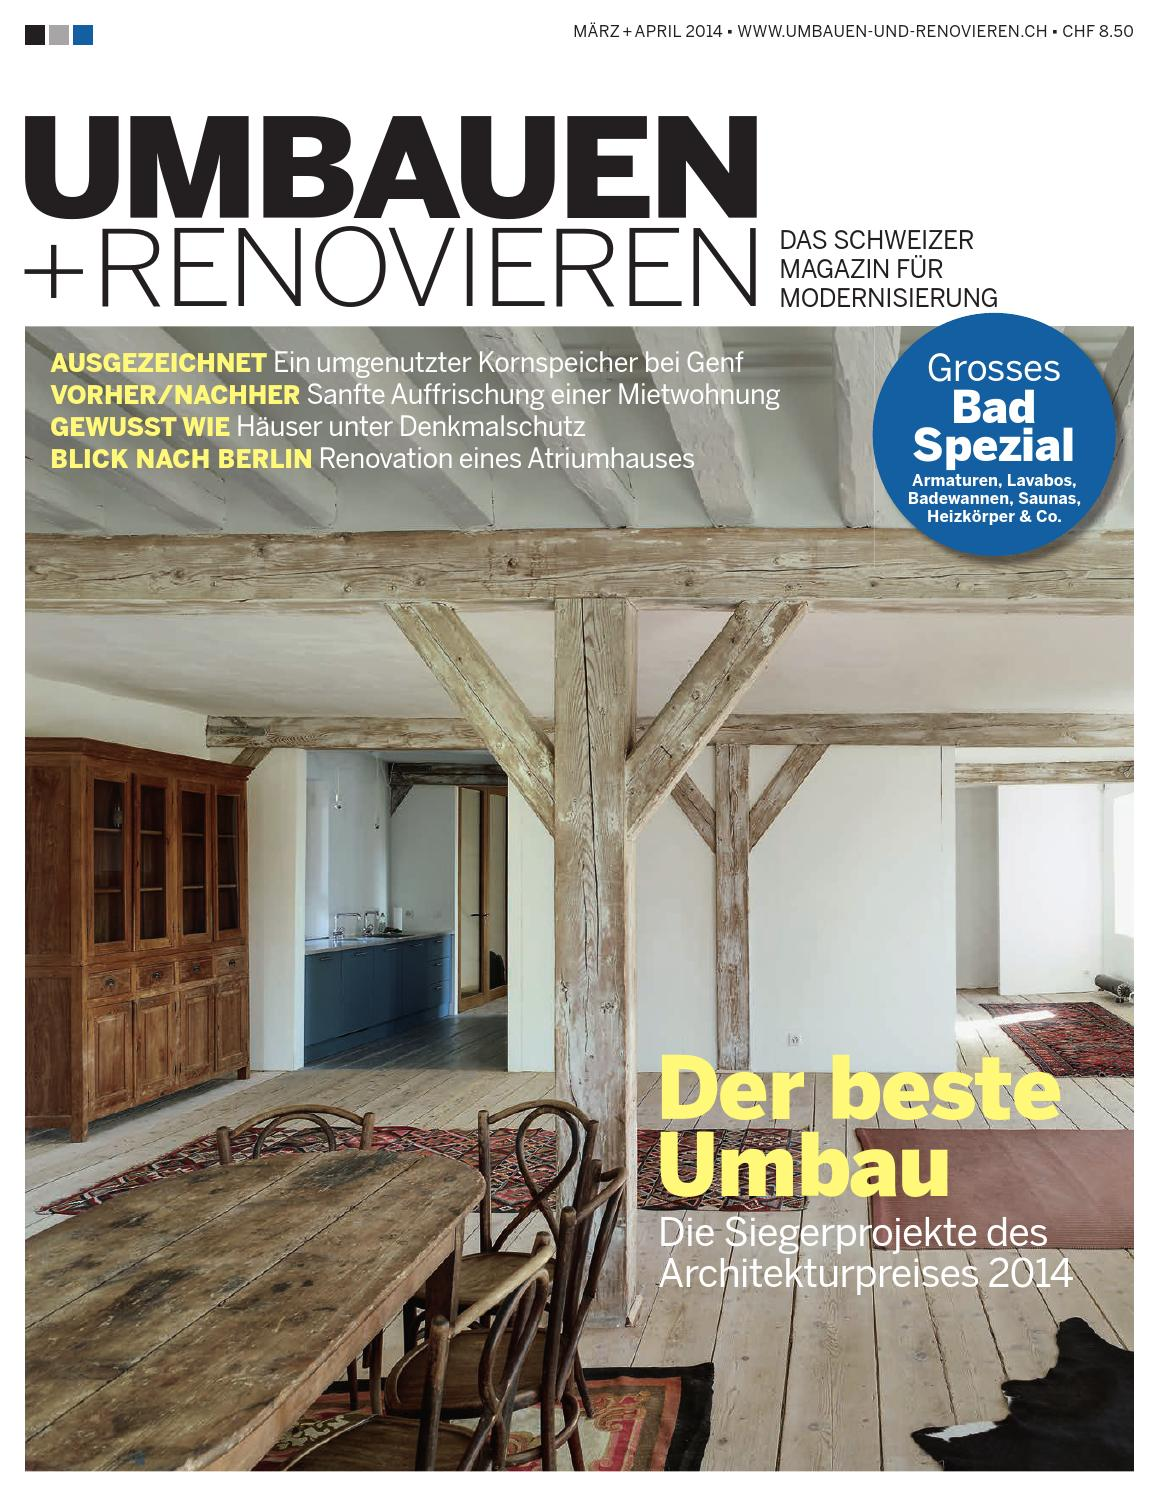 umbauen renovieren 02 2014 by archithema verlag issuu. Black Bedroom Furniture Sets. Home Design Ideas